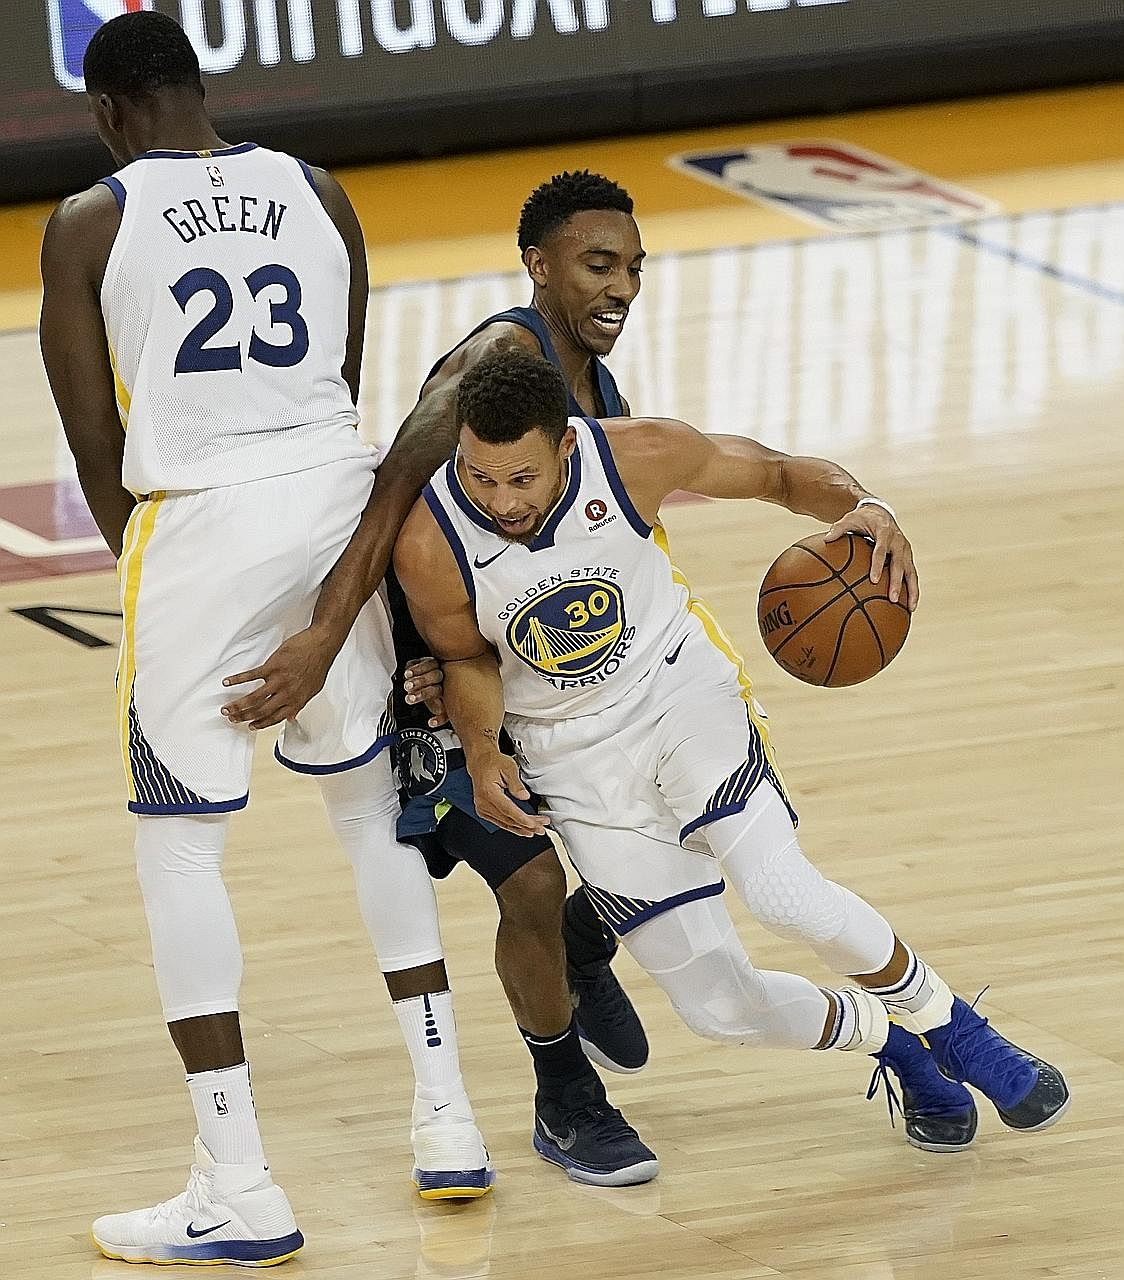 Golden State Warriors' Stephen Curry and team-mate Draymond Green executing a pick and roll to evade the defence of Minnesota Timberwolves guard Jeff Teague during their NBA game on Wednesday. Golden State won 125-101.